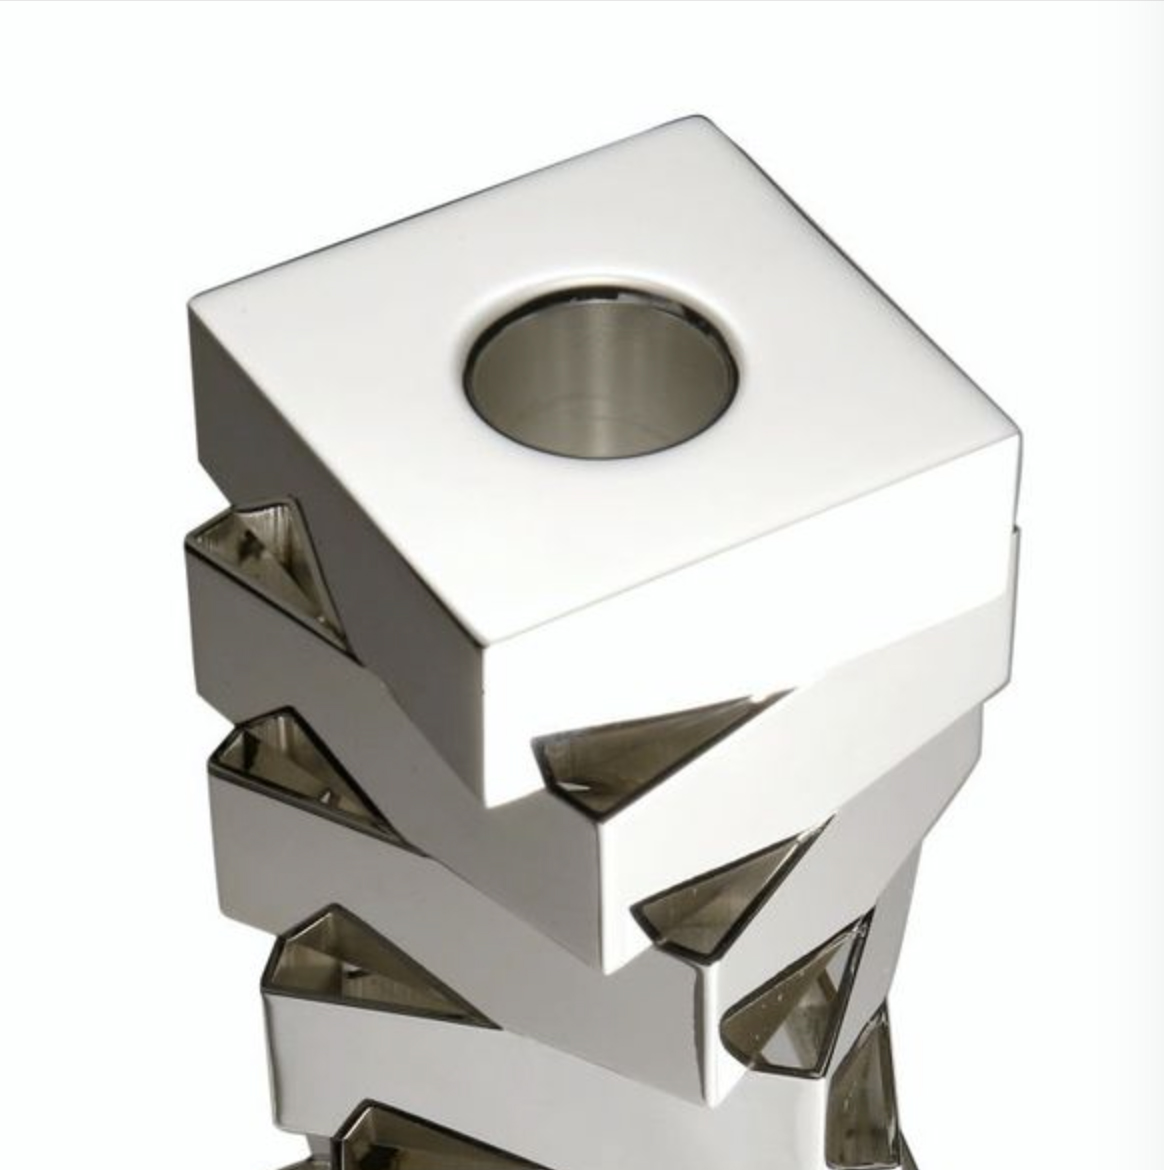 Vortice Candleholders - This Vortice candleholder is made of smooth glossy silver alloy.   Matter of Stuff